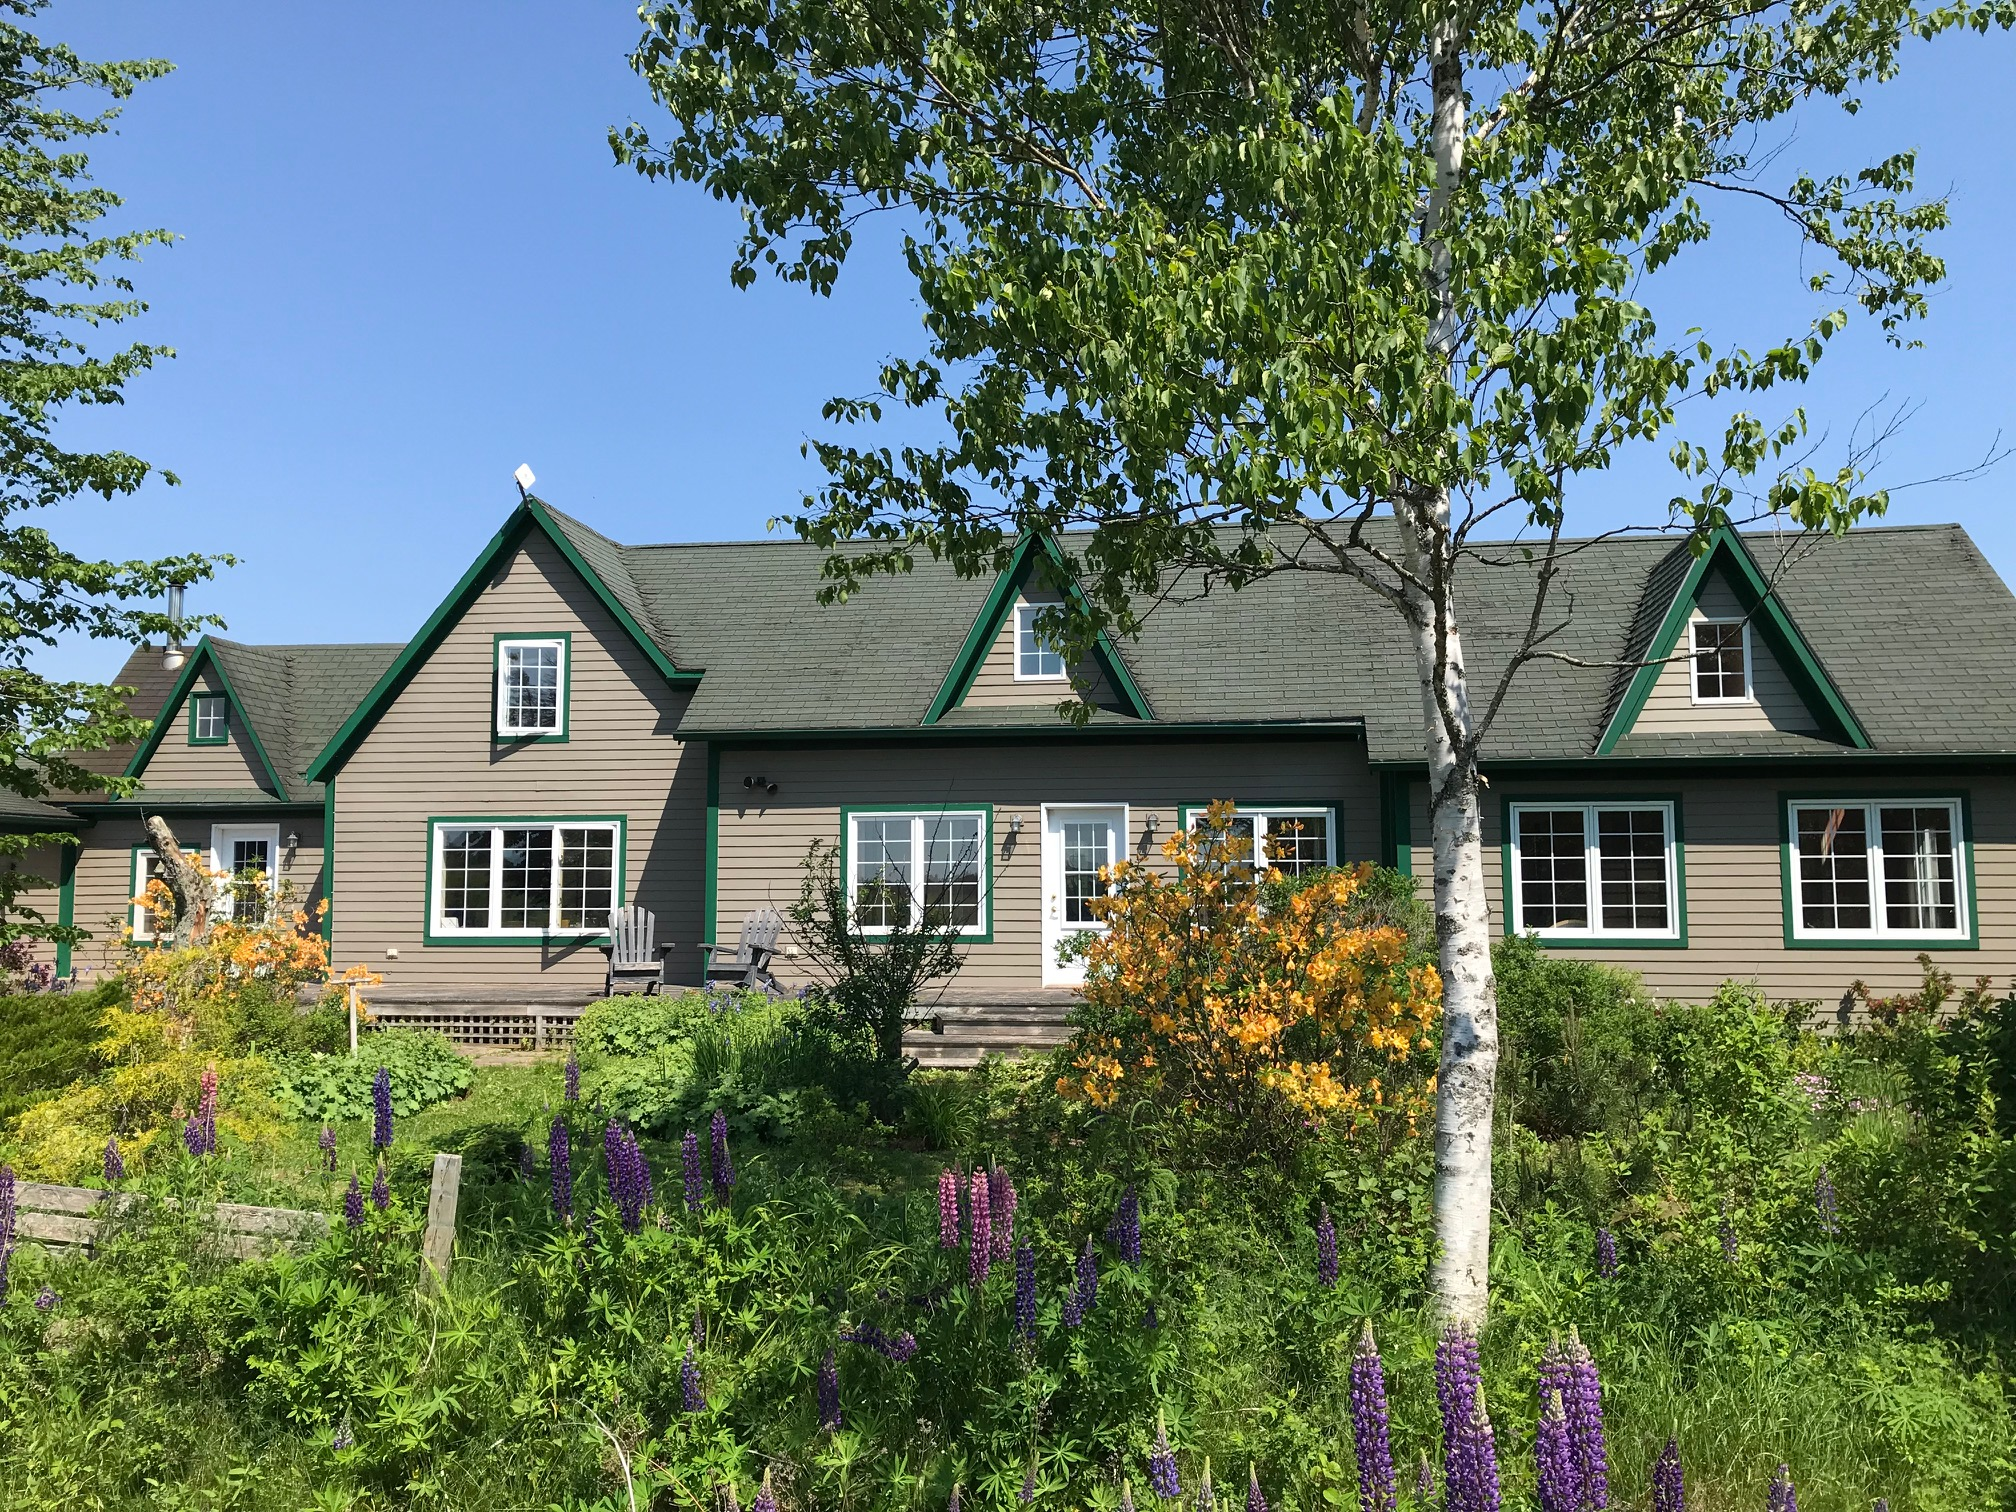 Schedule    9:30     Arrive and settle. Enjoy a coffee and tour the gardens.  10:00    Writing practise: craft and voice  12:15    Healthy vegetarian feast  1:00     Writing practise: diving deep  4:00     Wrap up    The Hideout  is located in scenic North Tyron, located just off the Trans-Canada Highway near Crapaud, about mid-way between Summerside and Charlottetown and ten minutes from the Confederation Bridge.  Price includes the full cost of a vegetarian lunch and coffee, tea, and treats throughout the day.   Questions?  To secure your spot in the retreat, full payment is required at the time of registration. To register or for more information, contact Trevor at  trevor@trevorcorkum.com .